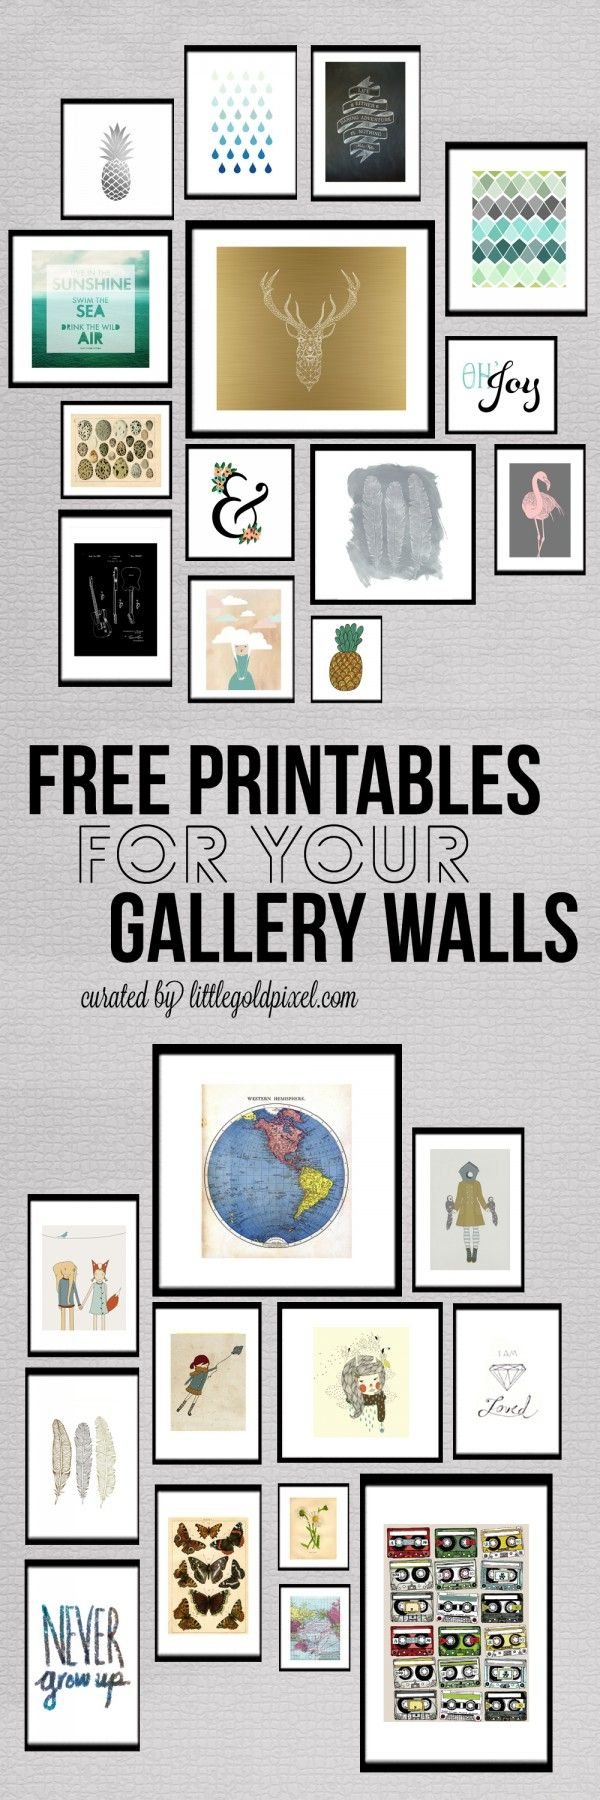 Roundup: 26 Free Printables for Gallery Walls • Little Gold Pixel  #freeprintables #freeart #gallerywall #gallerywalllayout